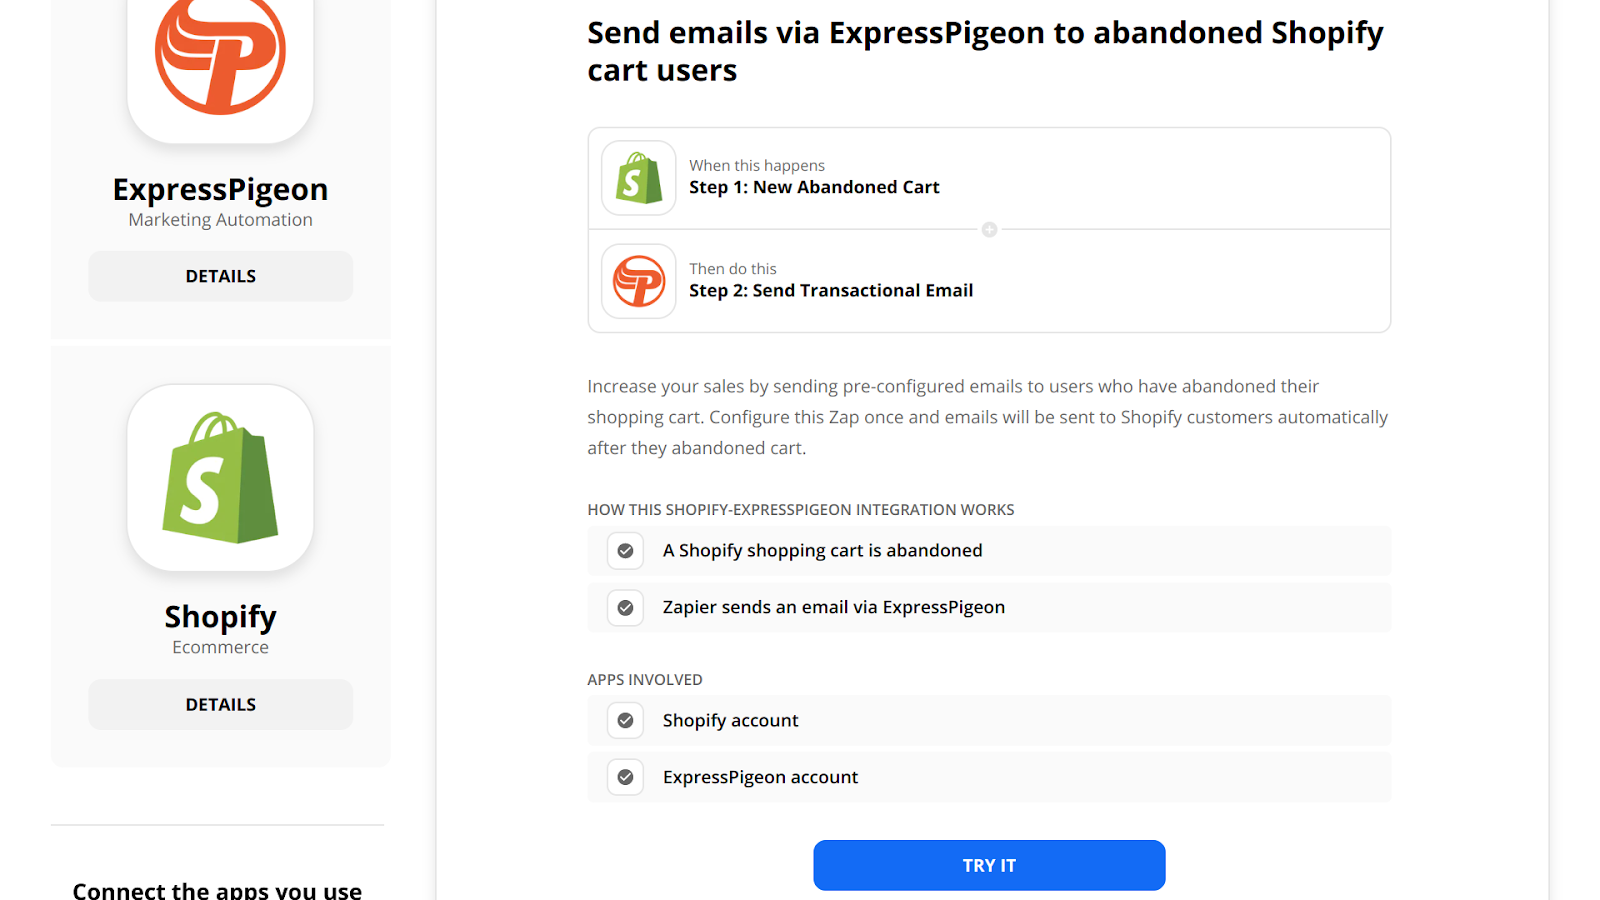 Create a Shopify + ExpressPigeon automation on Zapier.